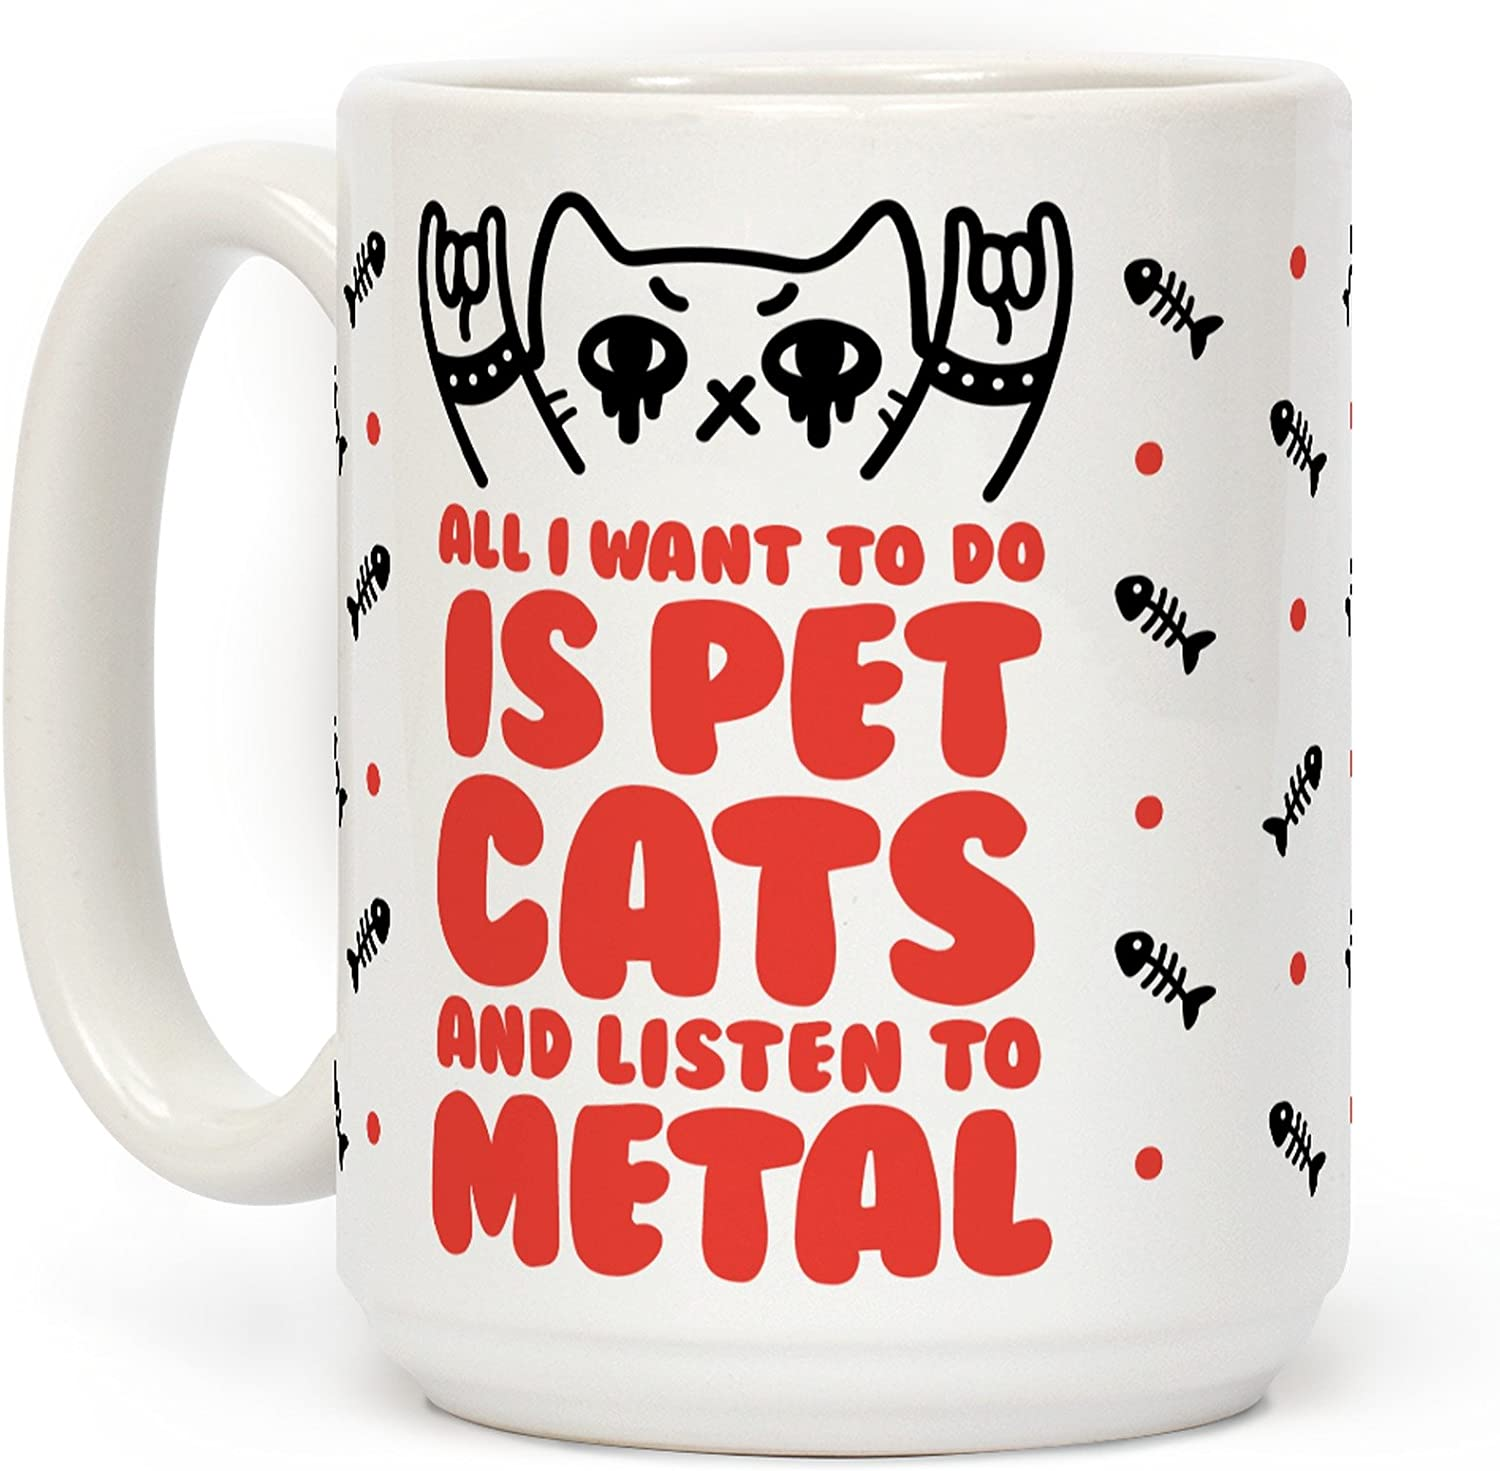 LookHUMAN All I Want To Do Is Pet Cats And Listen To Metal White 15 Ounce Ceramic Coffee Mug